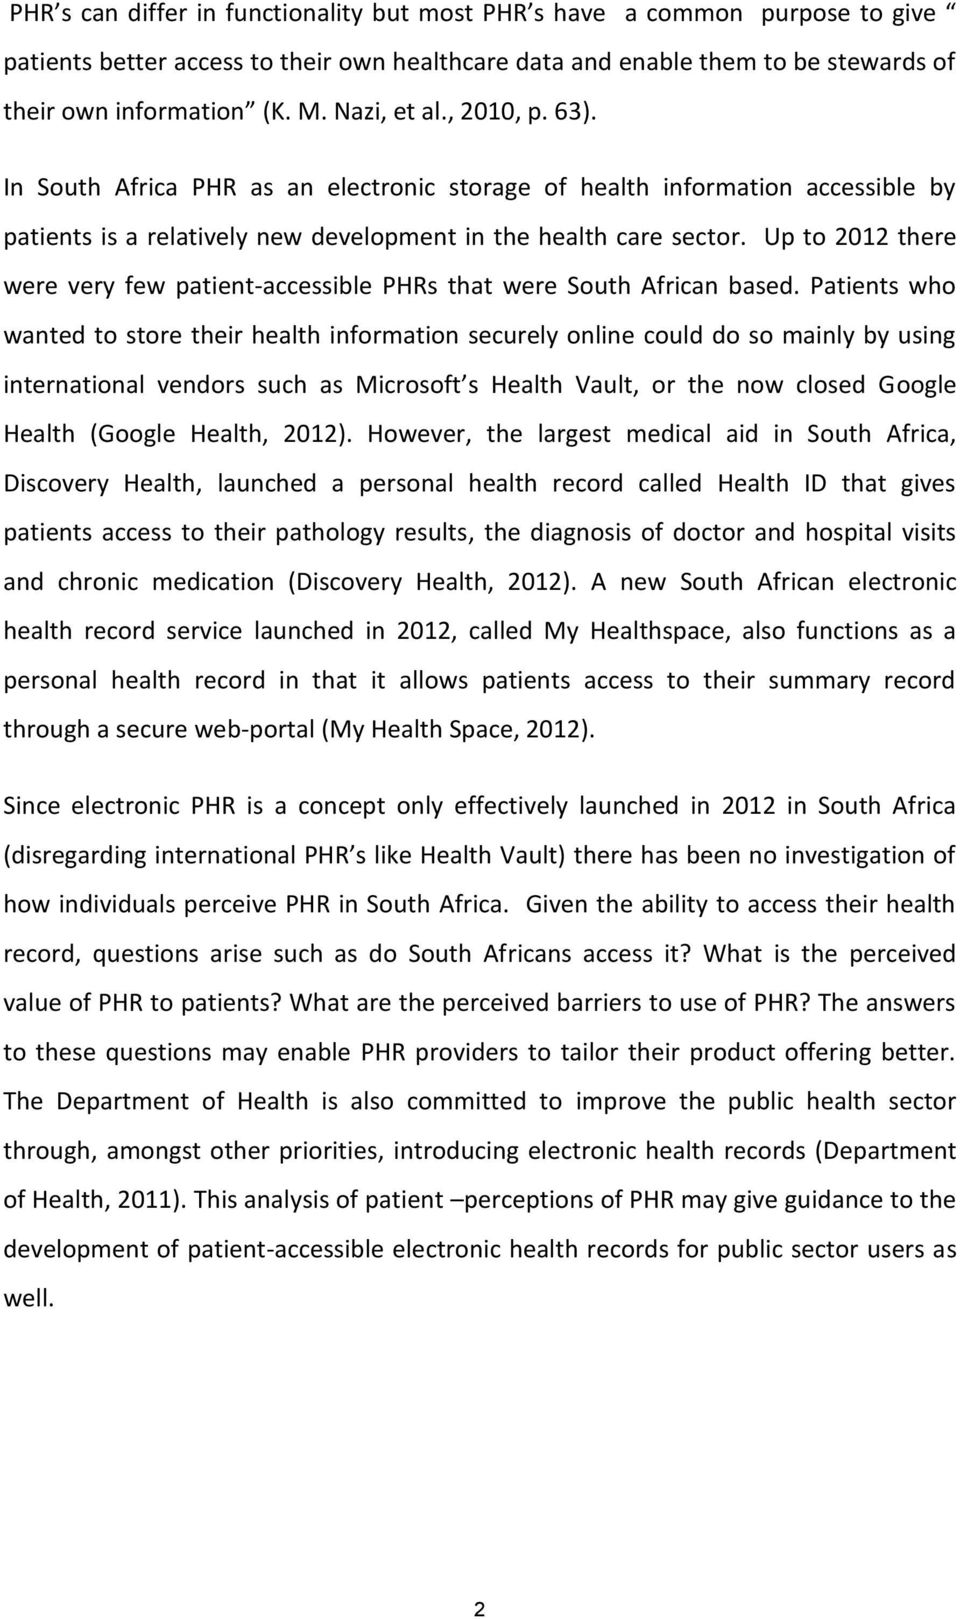 Up to 2012 there were very few patient-accessible PHRs that were South African based.